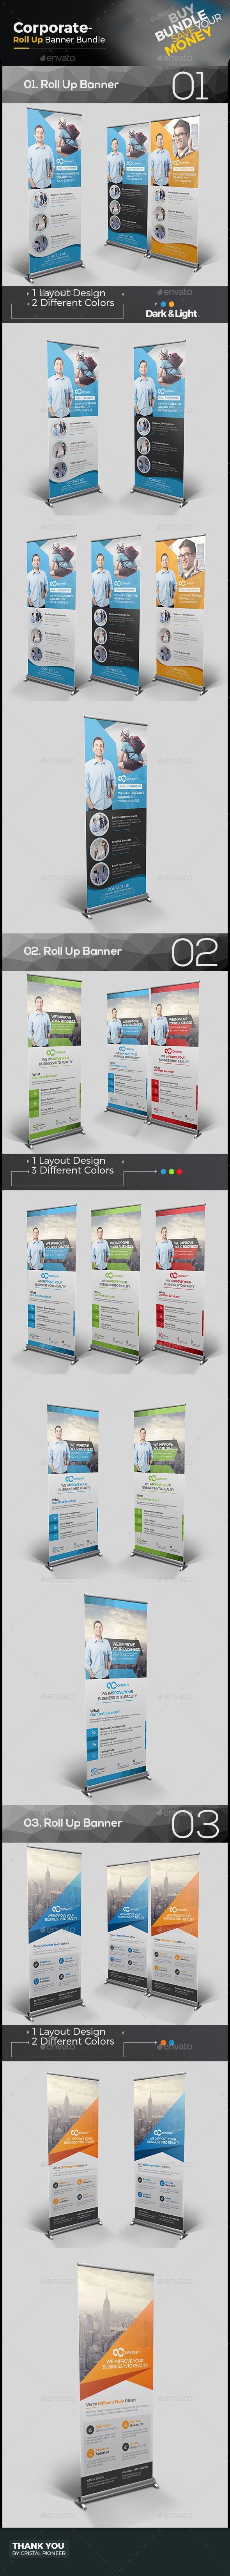 3 Corporate Roll Up Banner Templates Vector EPS, AI Illustrator. Download here: ...